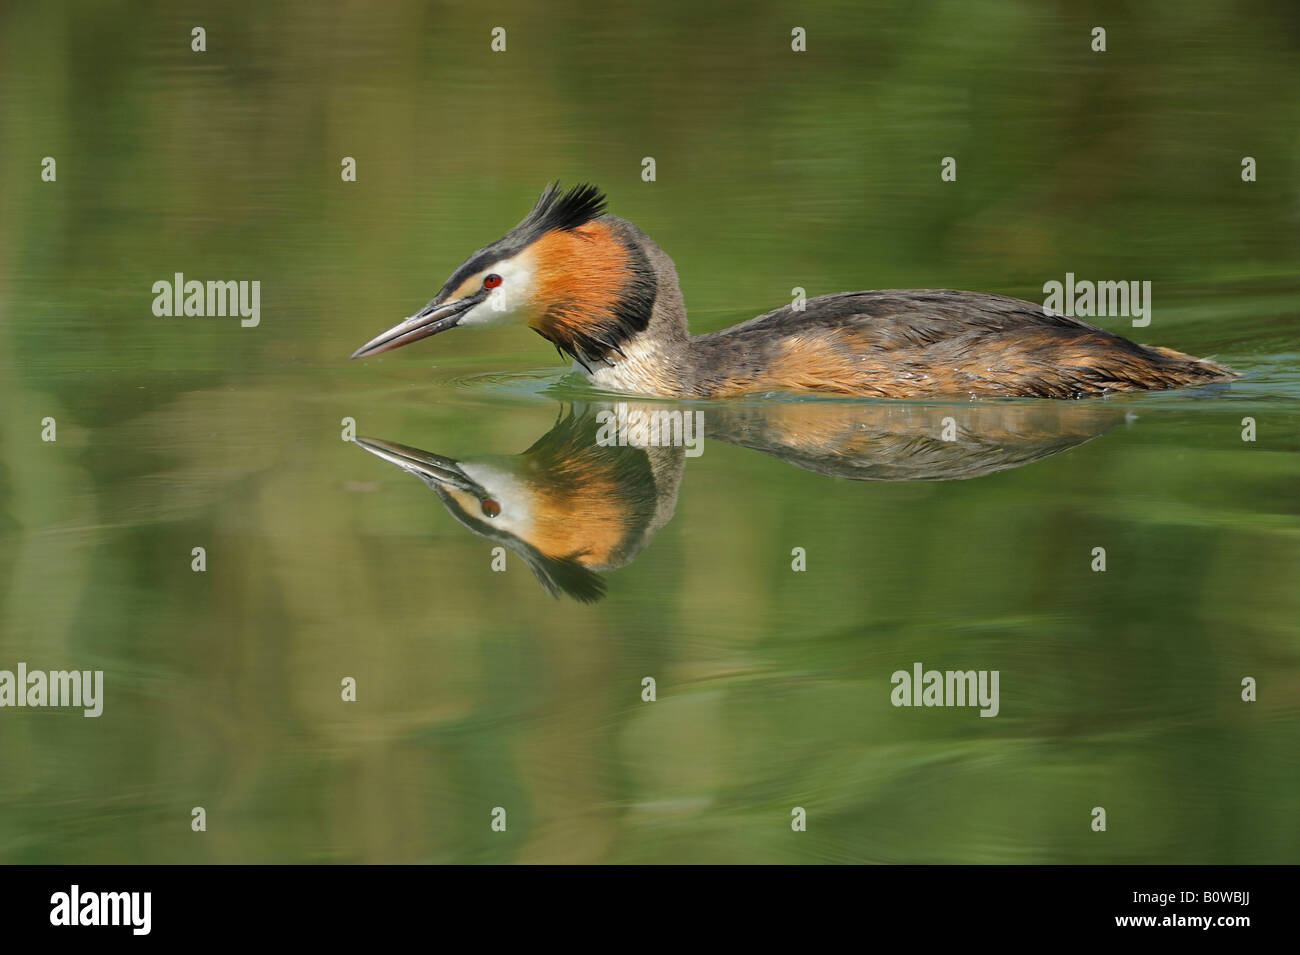 Great Crested Grebe (Podiceps cristatus) swimming, reflected on the water's surface - Stock Image